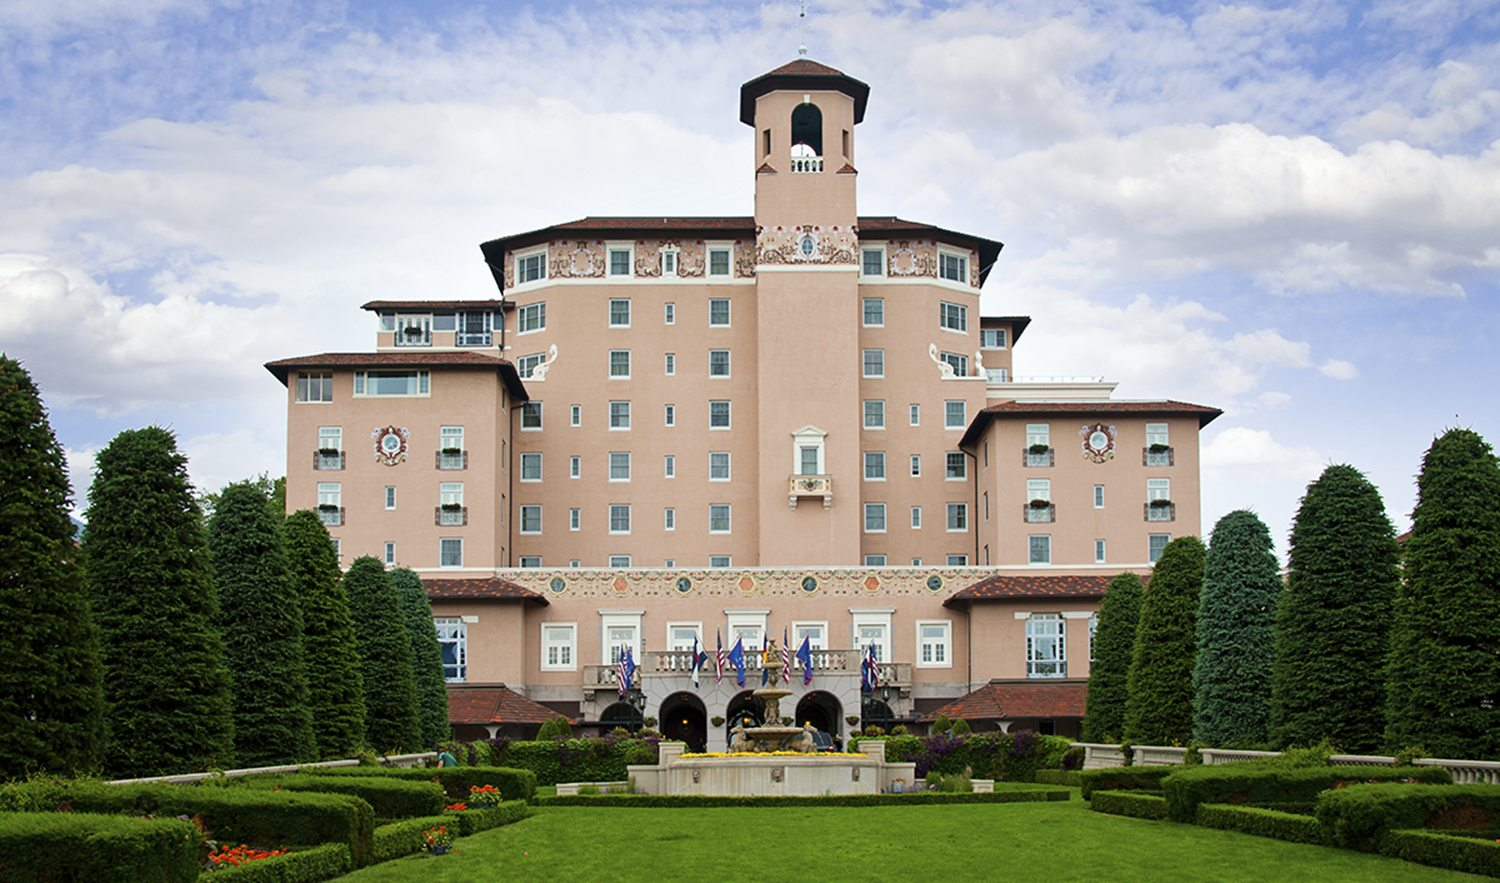 Broadmoor Hotel To Open Two New Venues This Spring